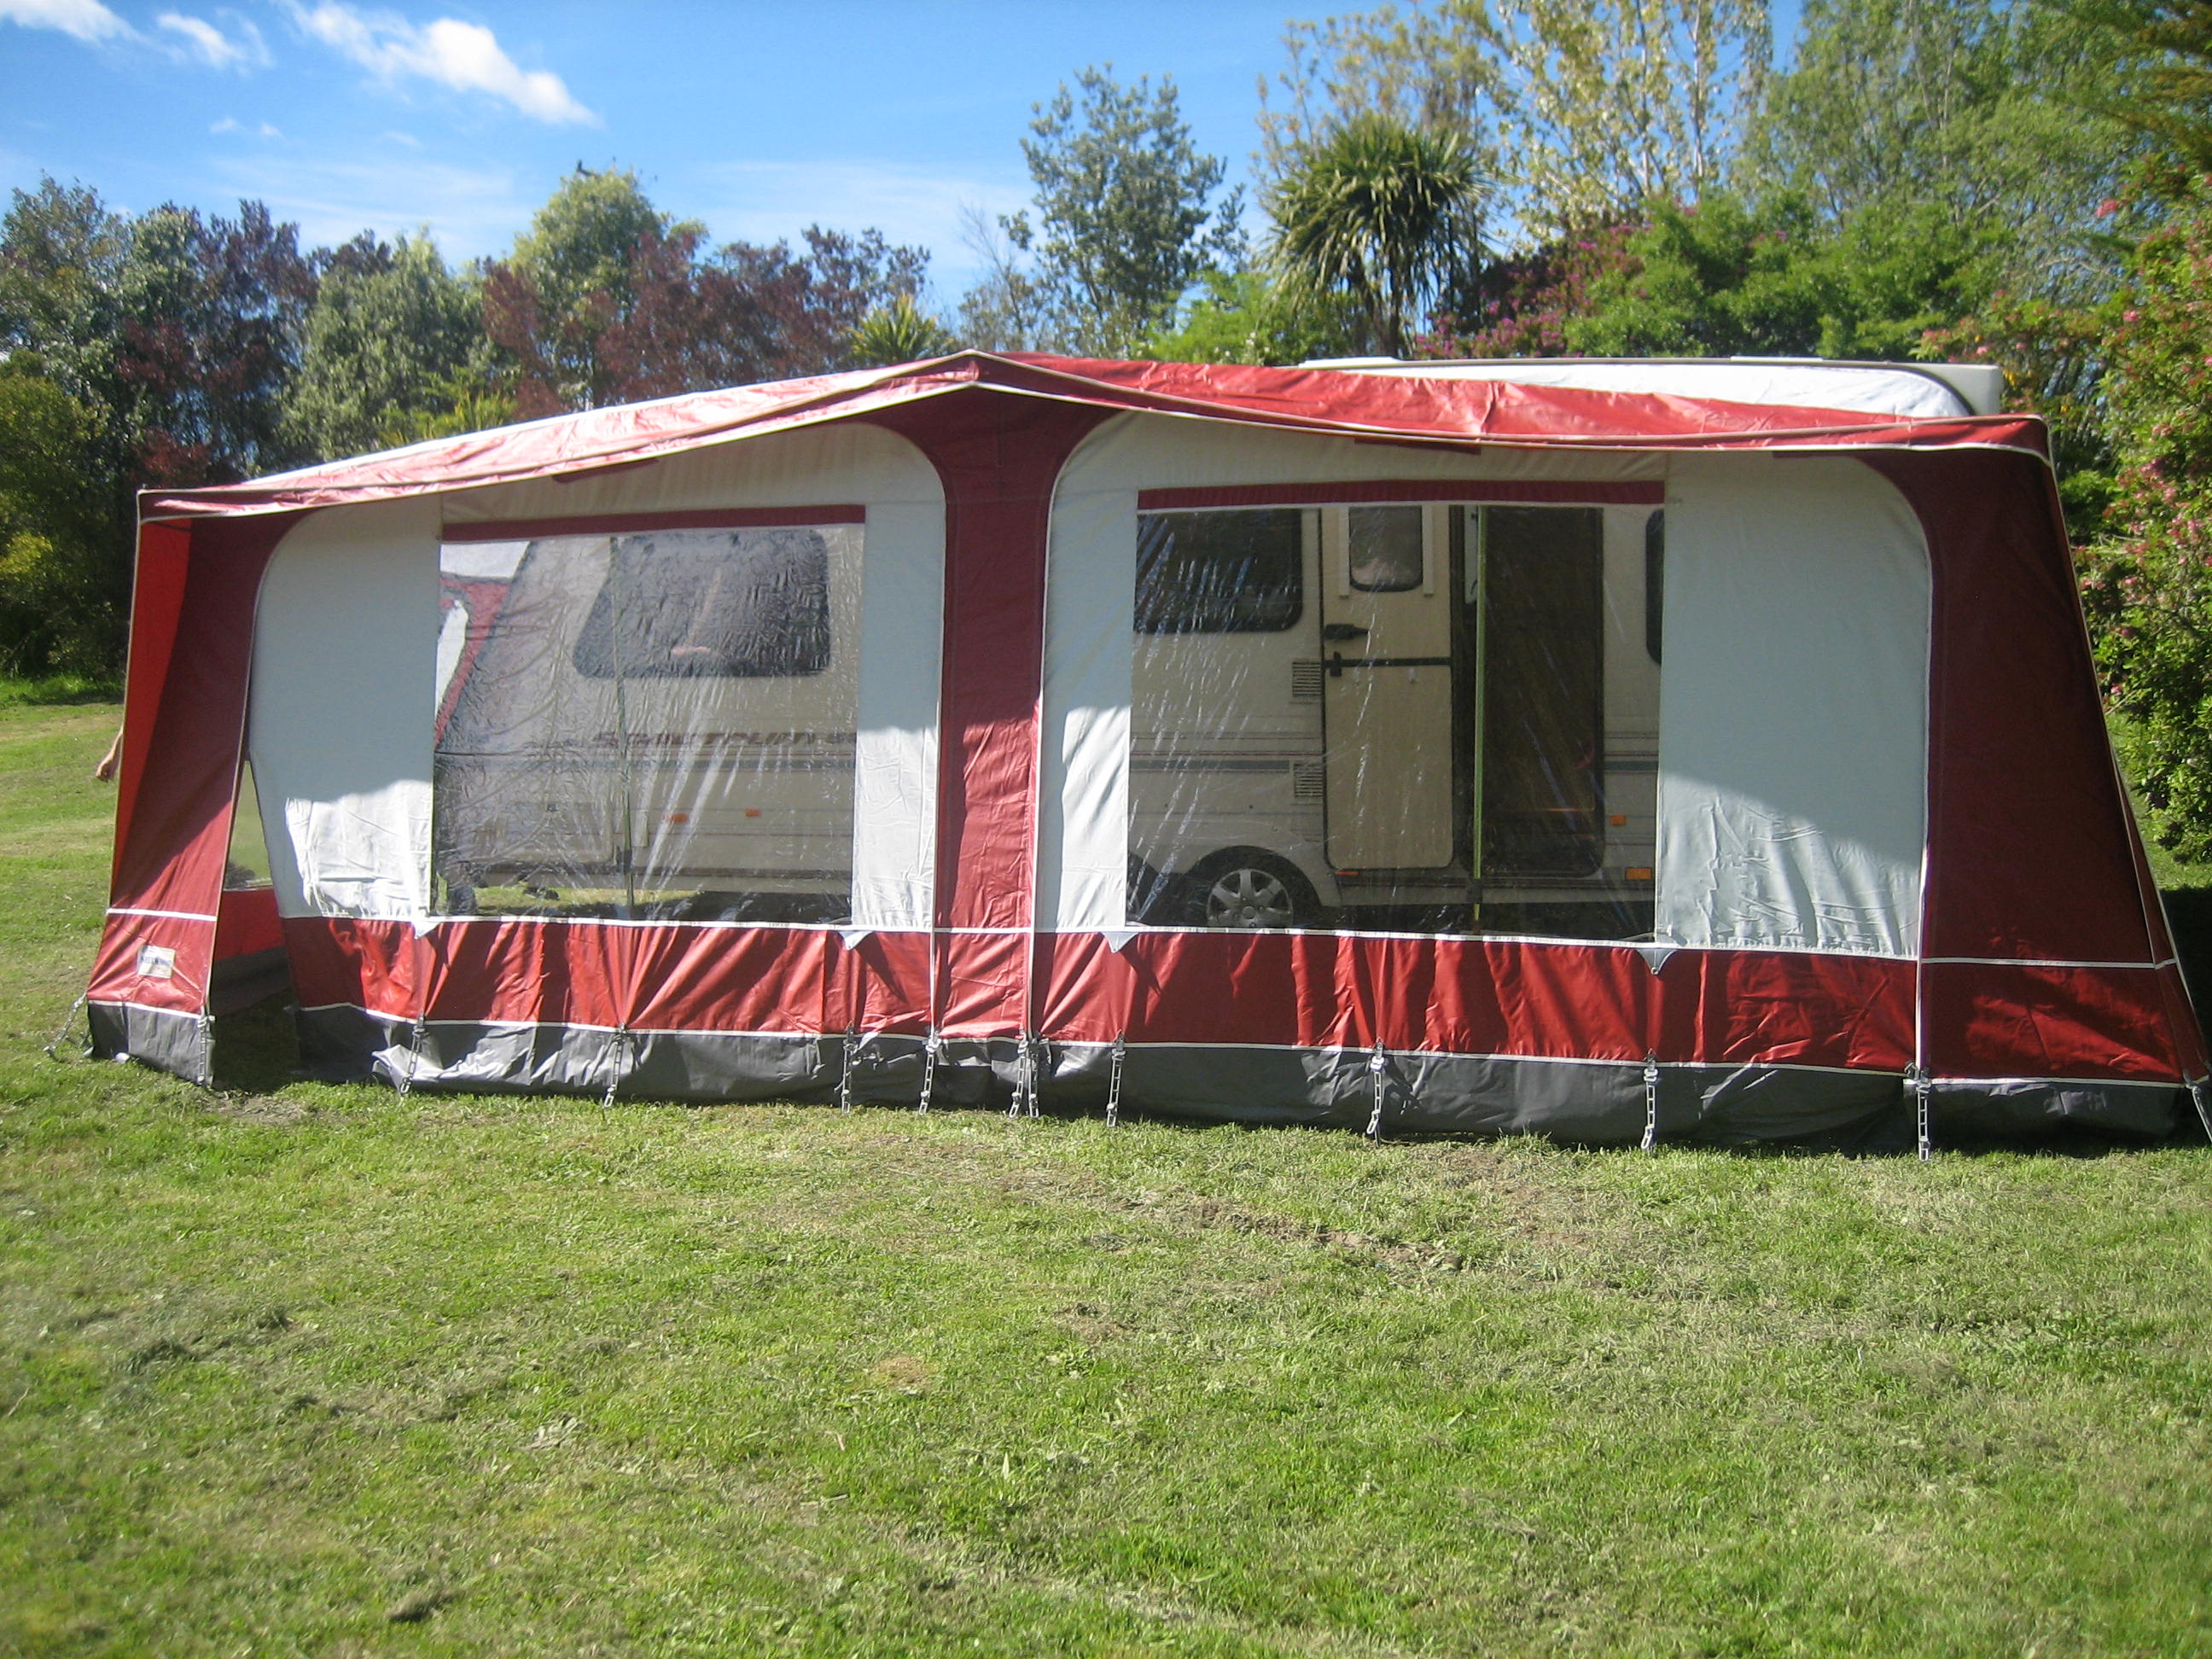 Awesome Caravans Amp RVs For Sale In New Zealand